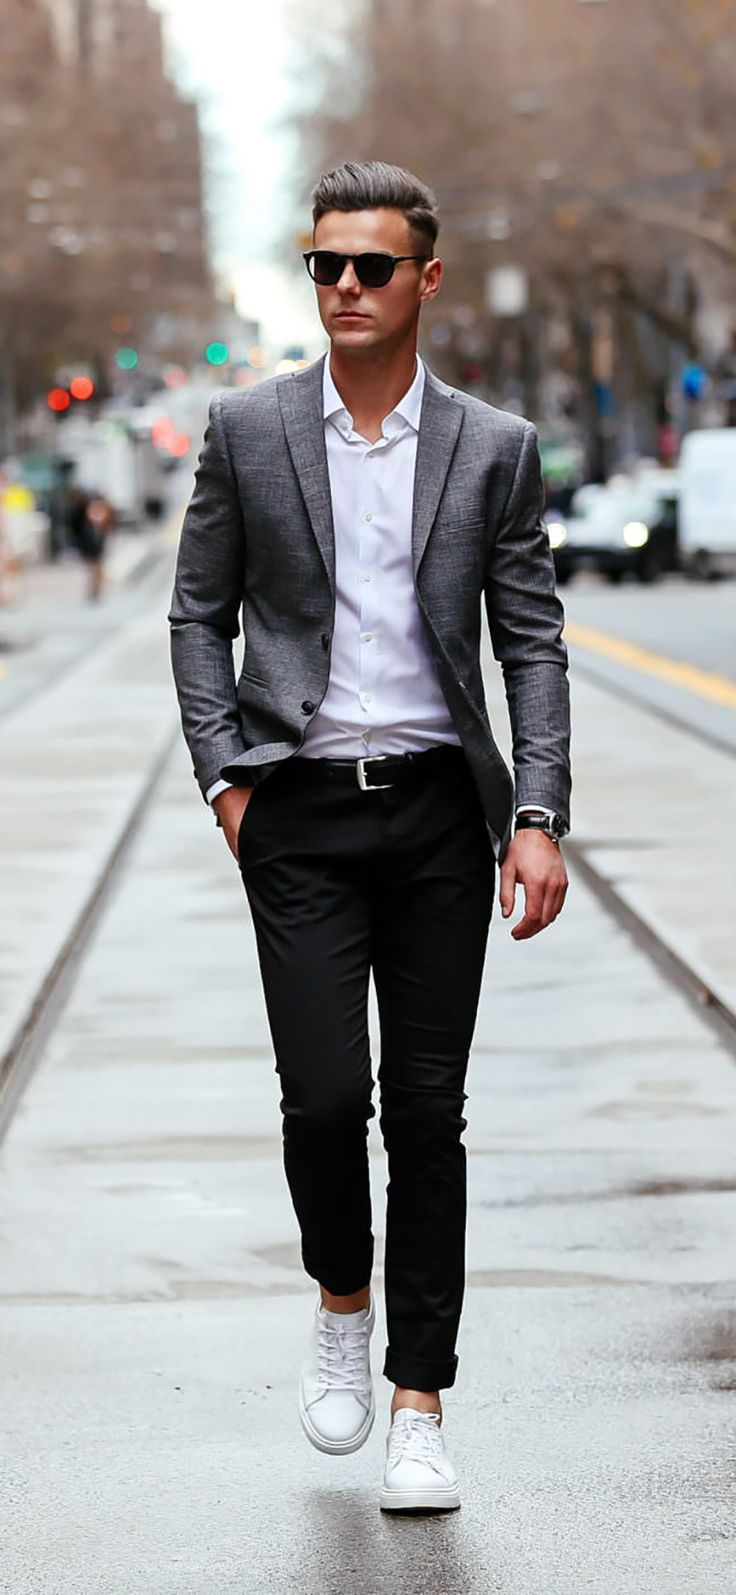 Men's Fashion Trends For 2019 To Wear Right Now | Jeans